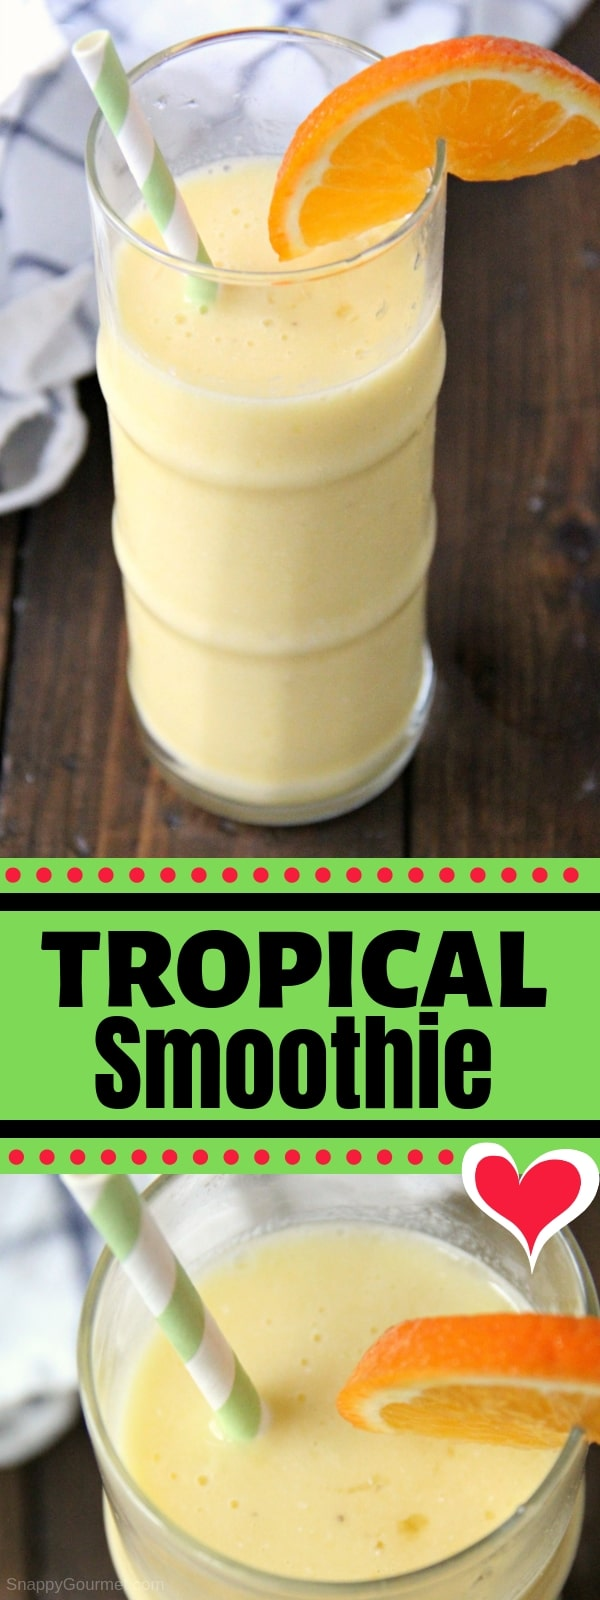 Tropical Smoothie collage